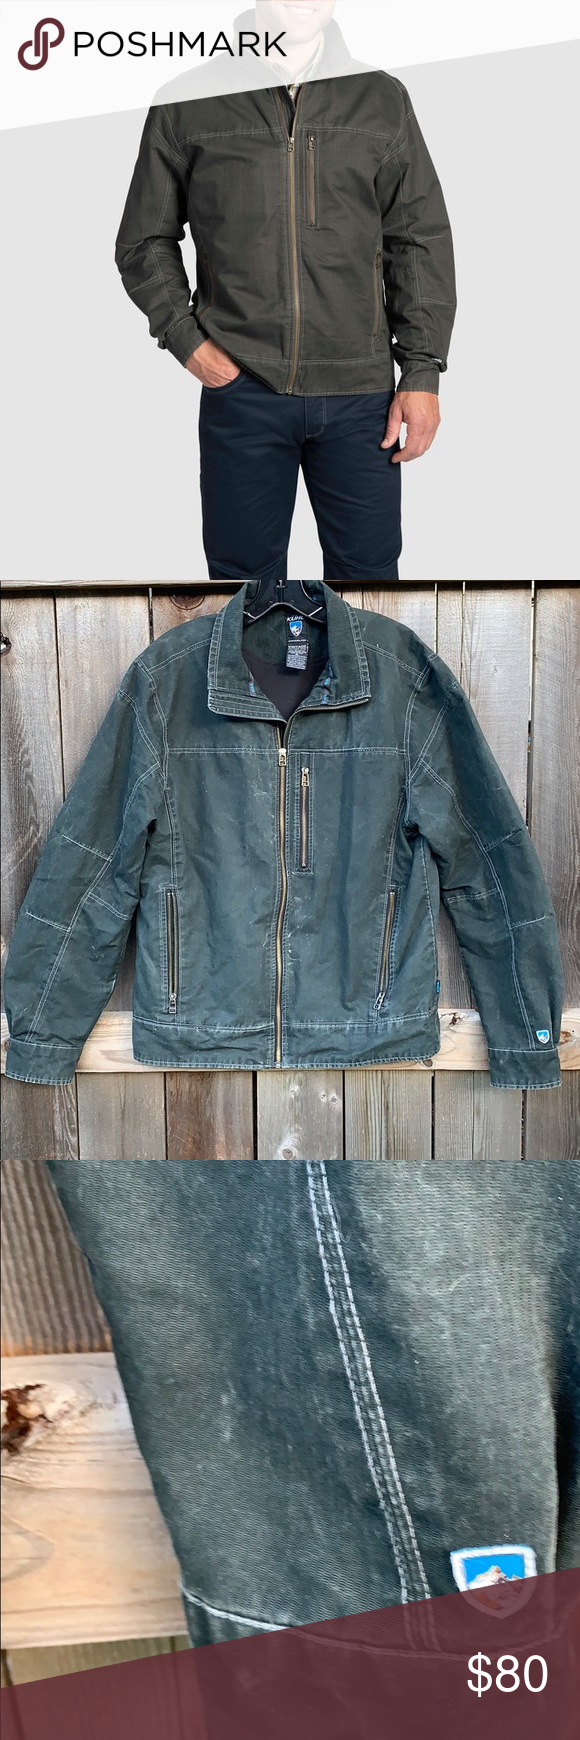 "f11f5526b0 Kuhl Men's Vintage Patina Dye Jacket Worn Kuhl Jacket. After we washed it,  it had the ""worn"" look and hubby didn't like it. He may have worn it a  dozen of ..."